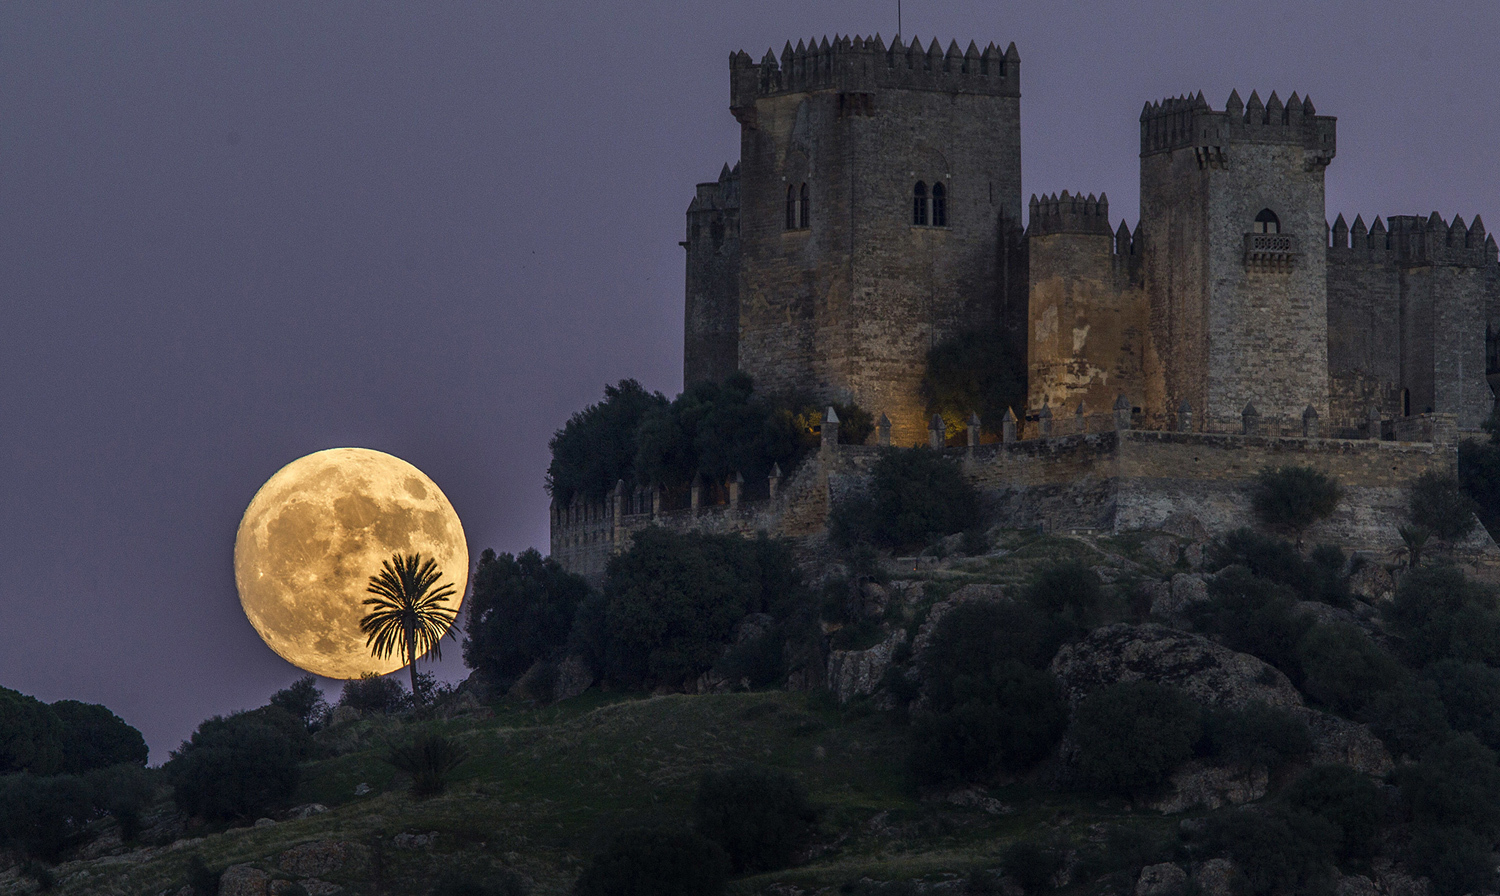 The moon rises behind the castle of Almodovar in Cordoba